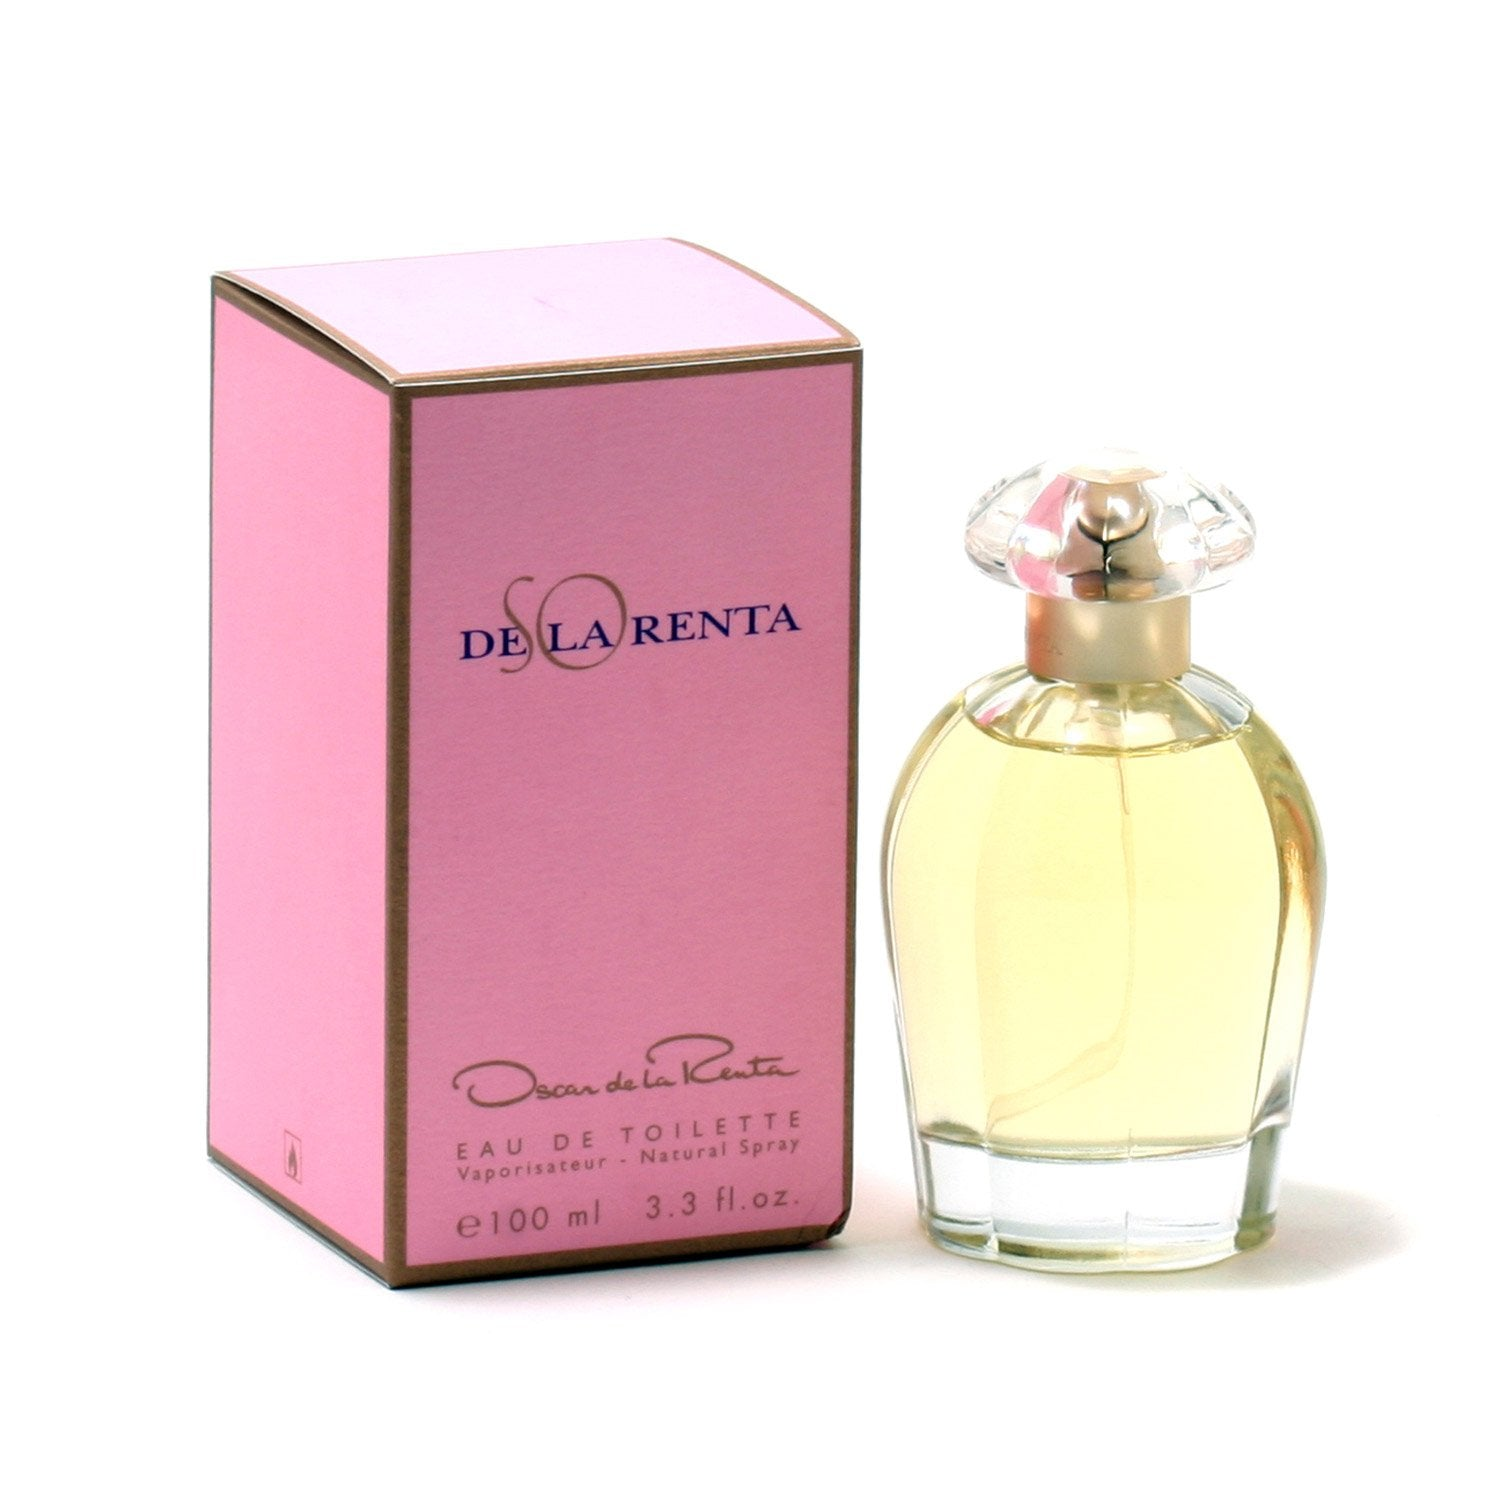 Perfume - SO DE LA RENTA FOR WOMEN BY OSCAR DE LA RENTA - EAU DE TOILETTE SPRAY, 3.3 OZ